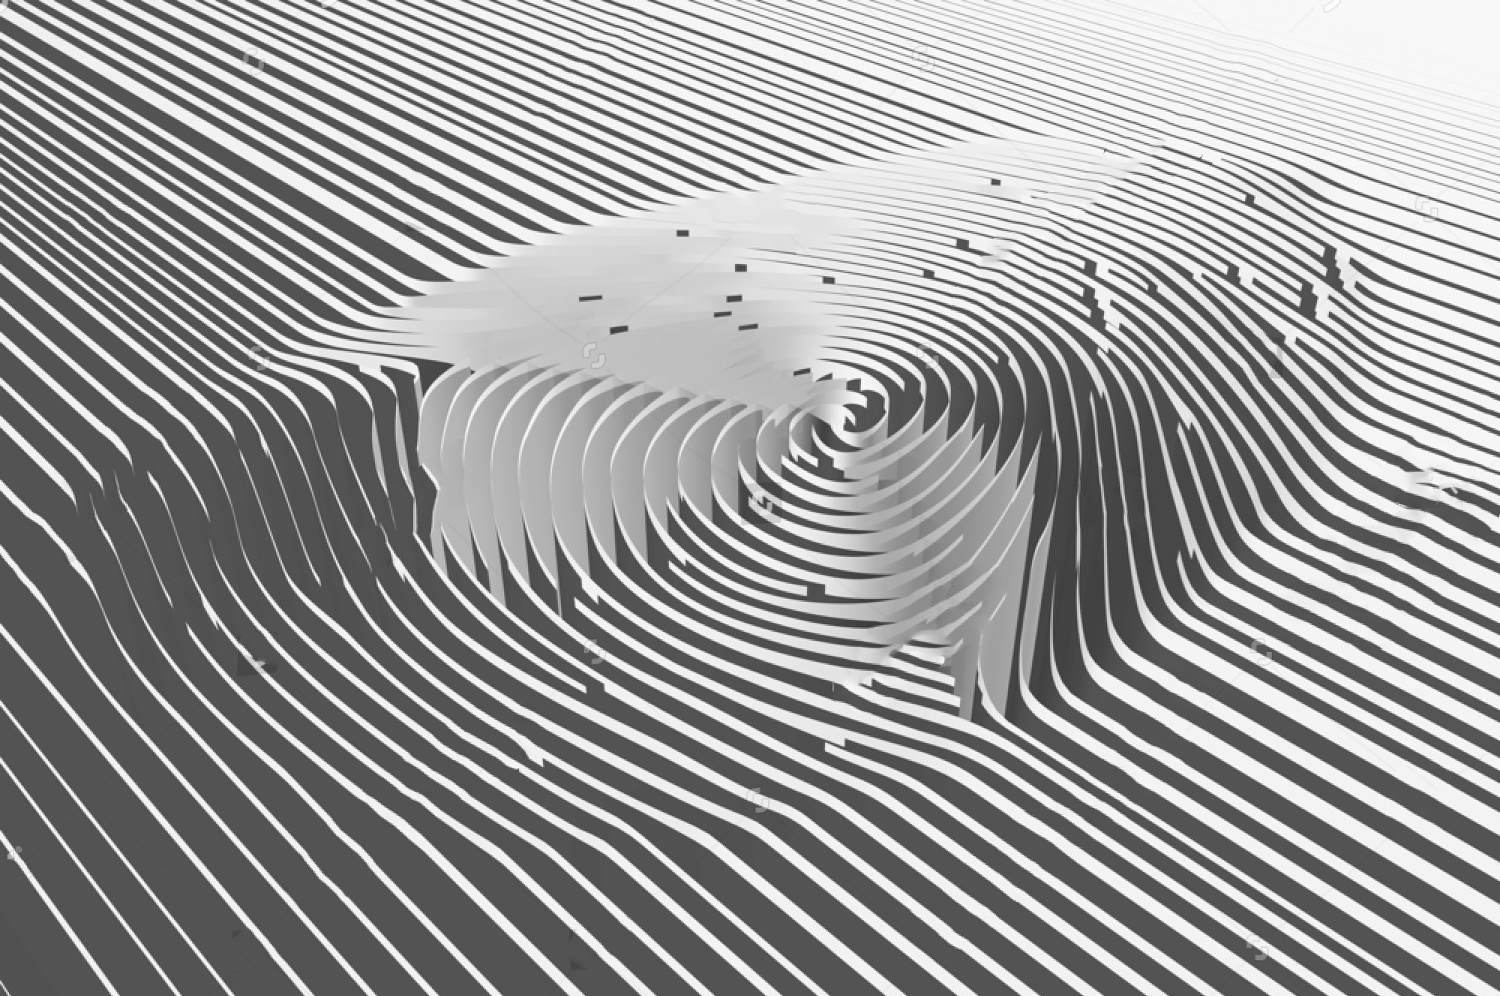 stock-photo-fingerprint-landscape-created-in-a-graphical-fashion-with-hard-shadows-d-illustration-447676723 copy